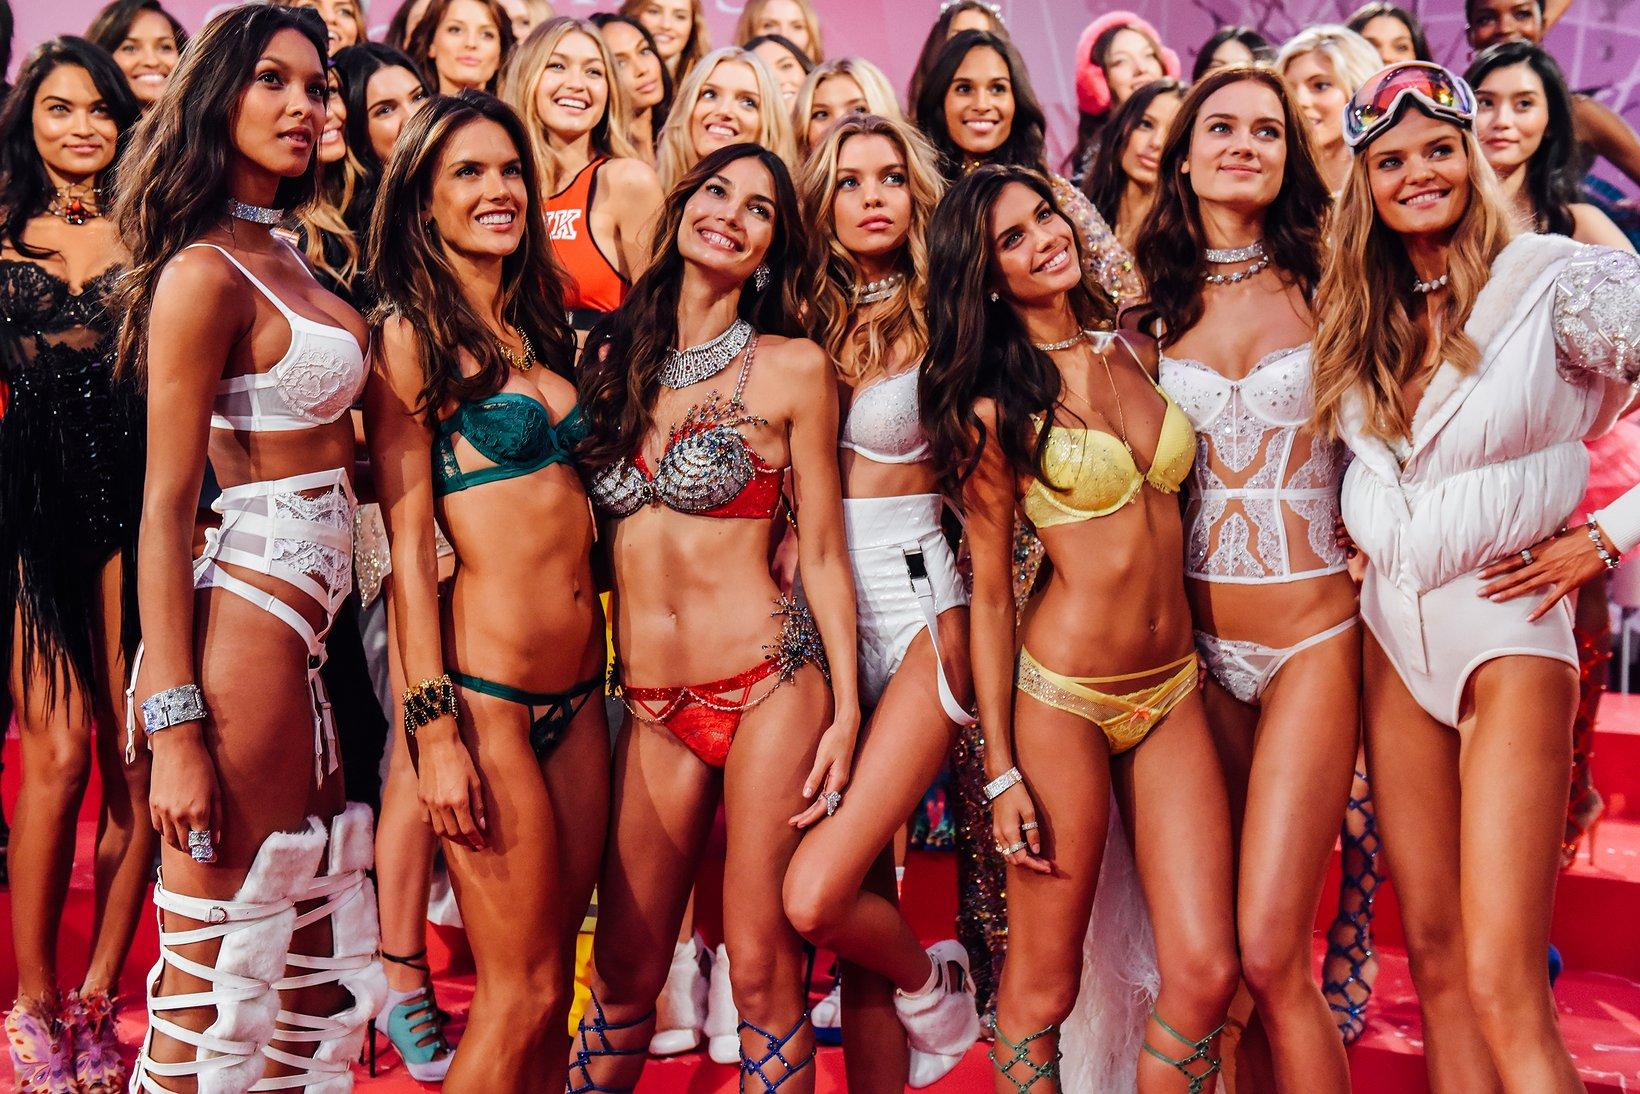 india learns victorias secret A highly disturbing victoria's secret-style lingerie show featuring 5-year-olds highlights the push to normalize pedophilia in the mainstream the latest movement within media and hollywood pop culture is a distinctive agenda to normalize.